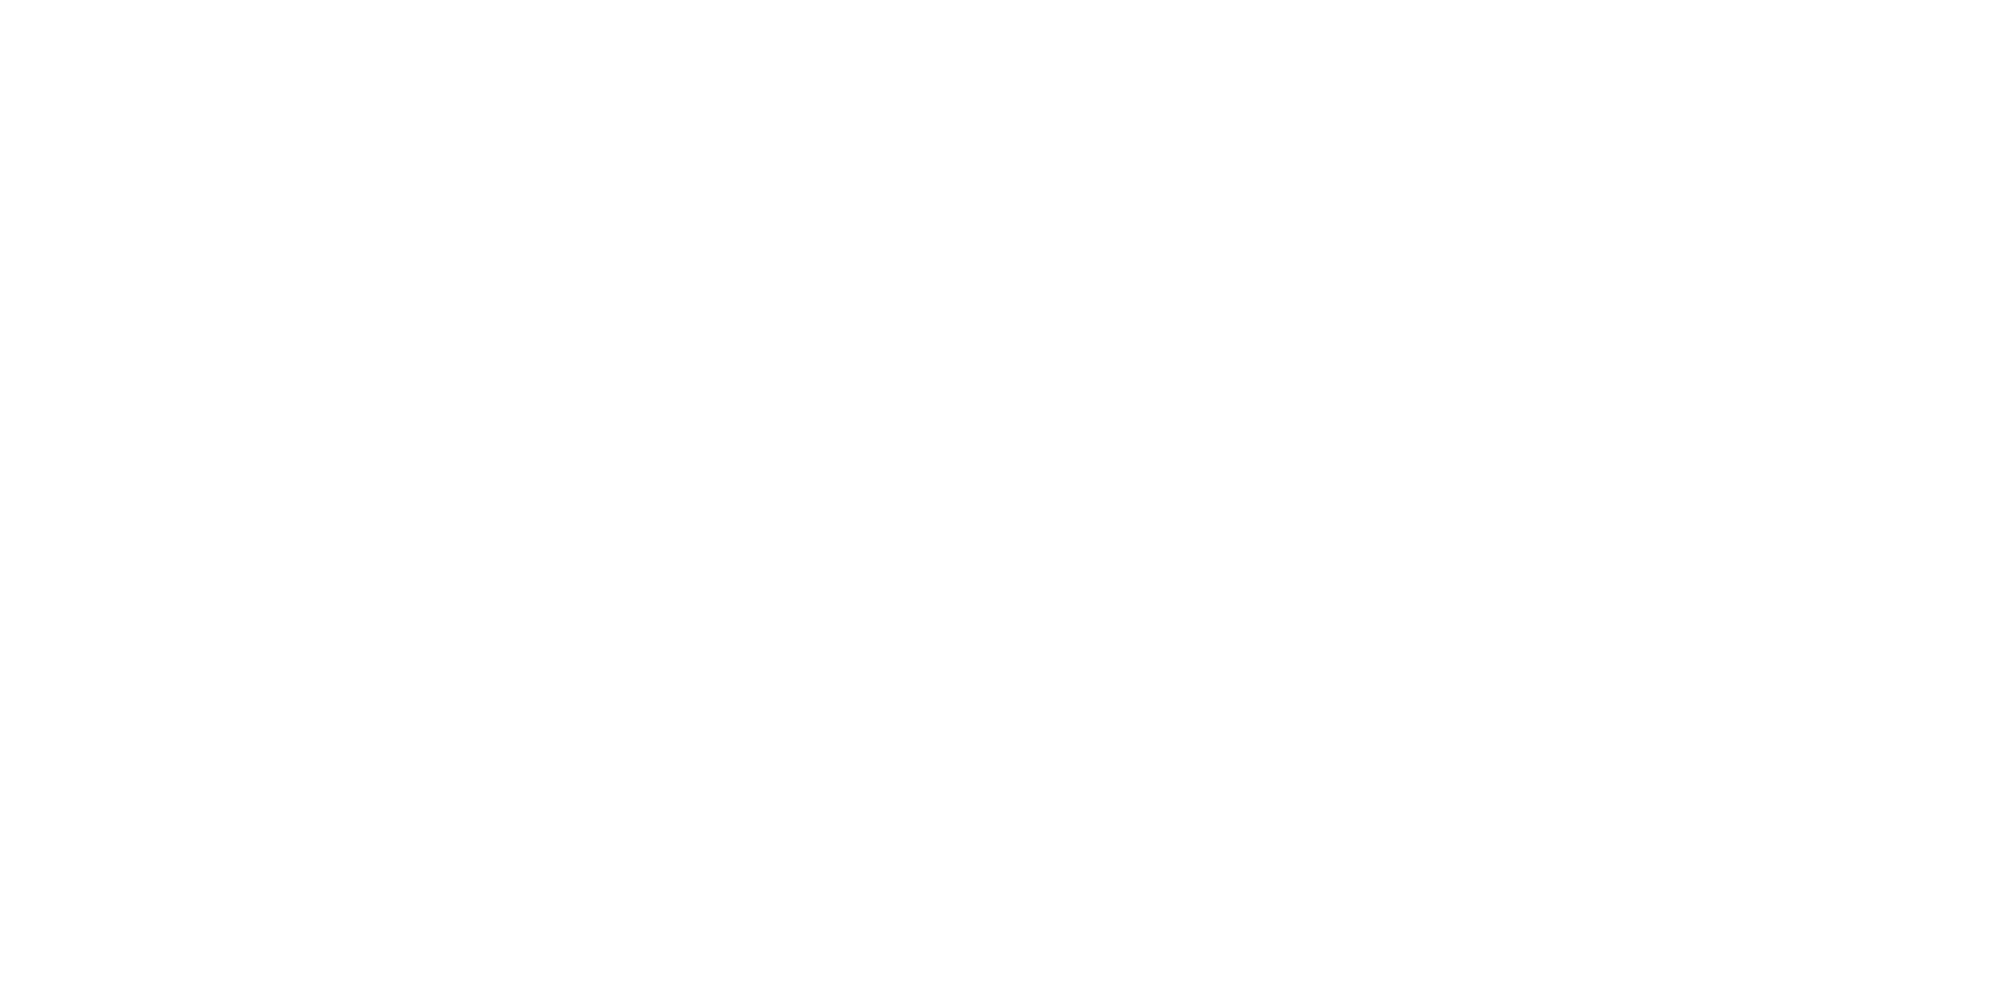 Power of Youth Charter